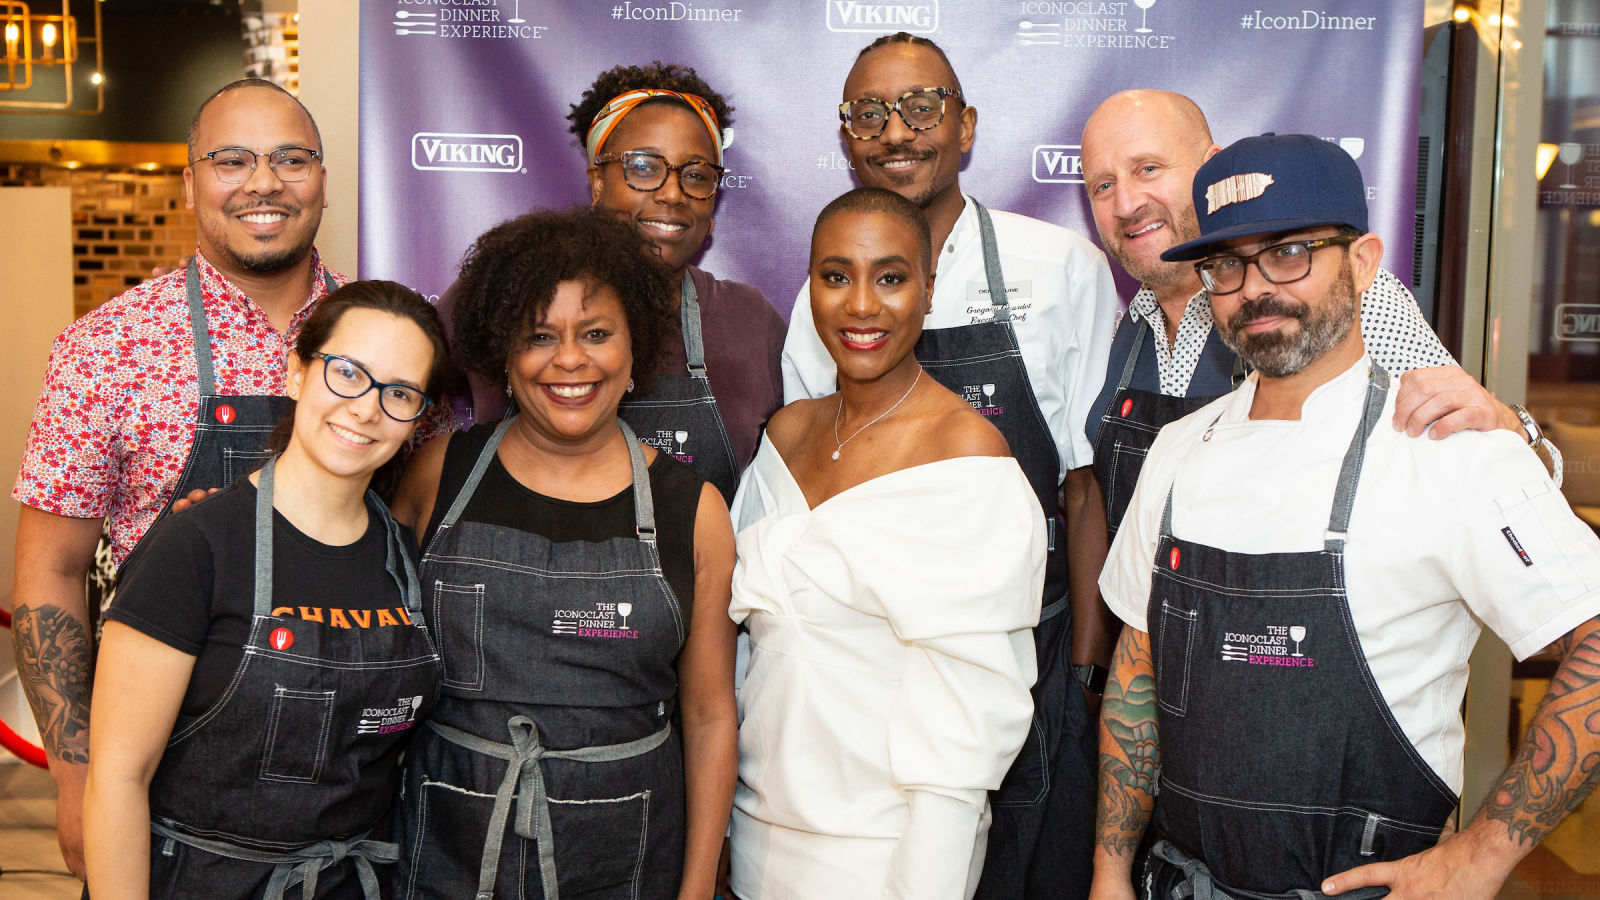 A Taste of Success: The Iconoclast Dinner Experience and James Beard Foundation Are Giving Chefs of Color a Seat at the Table